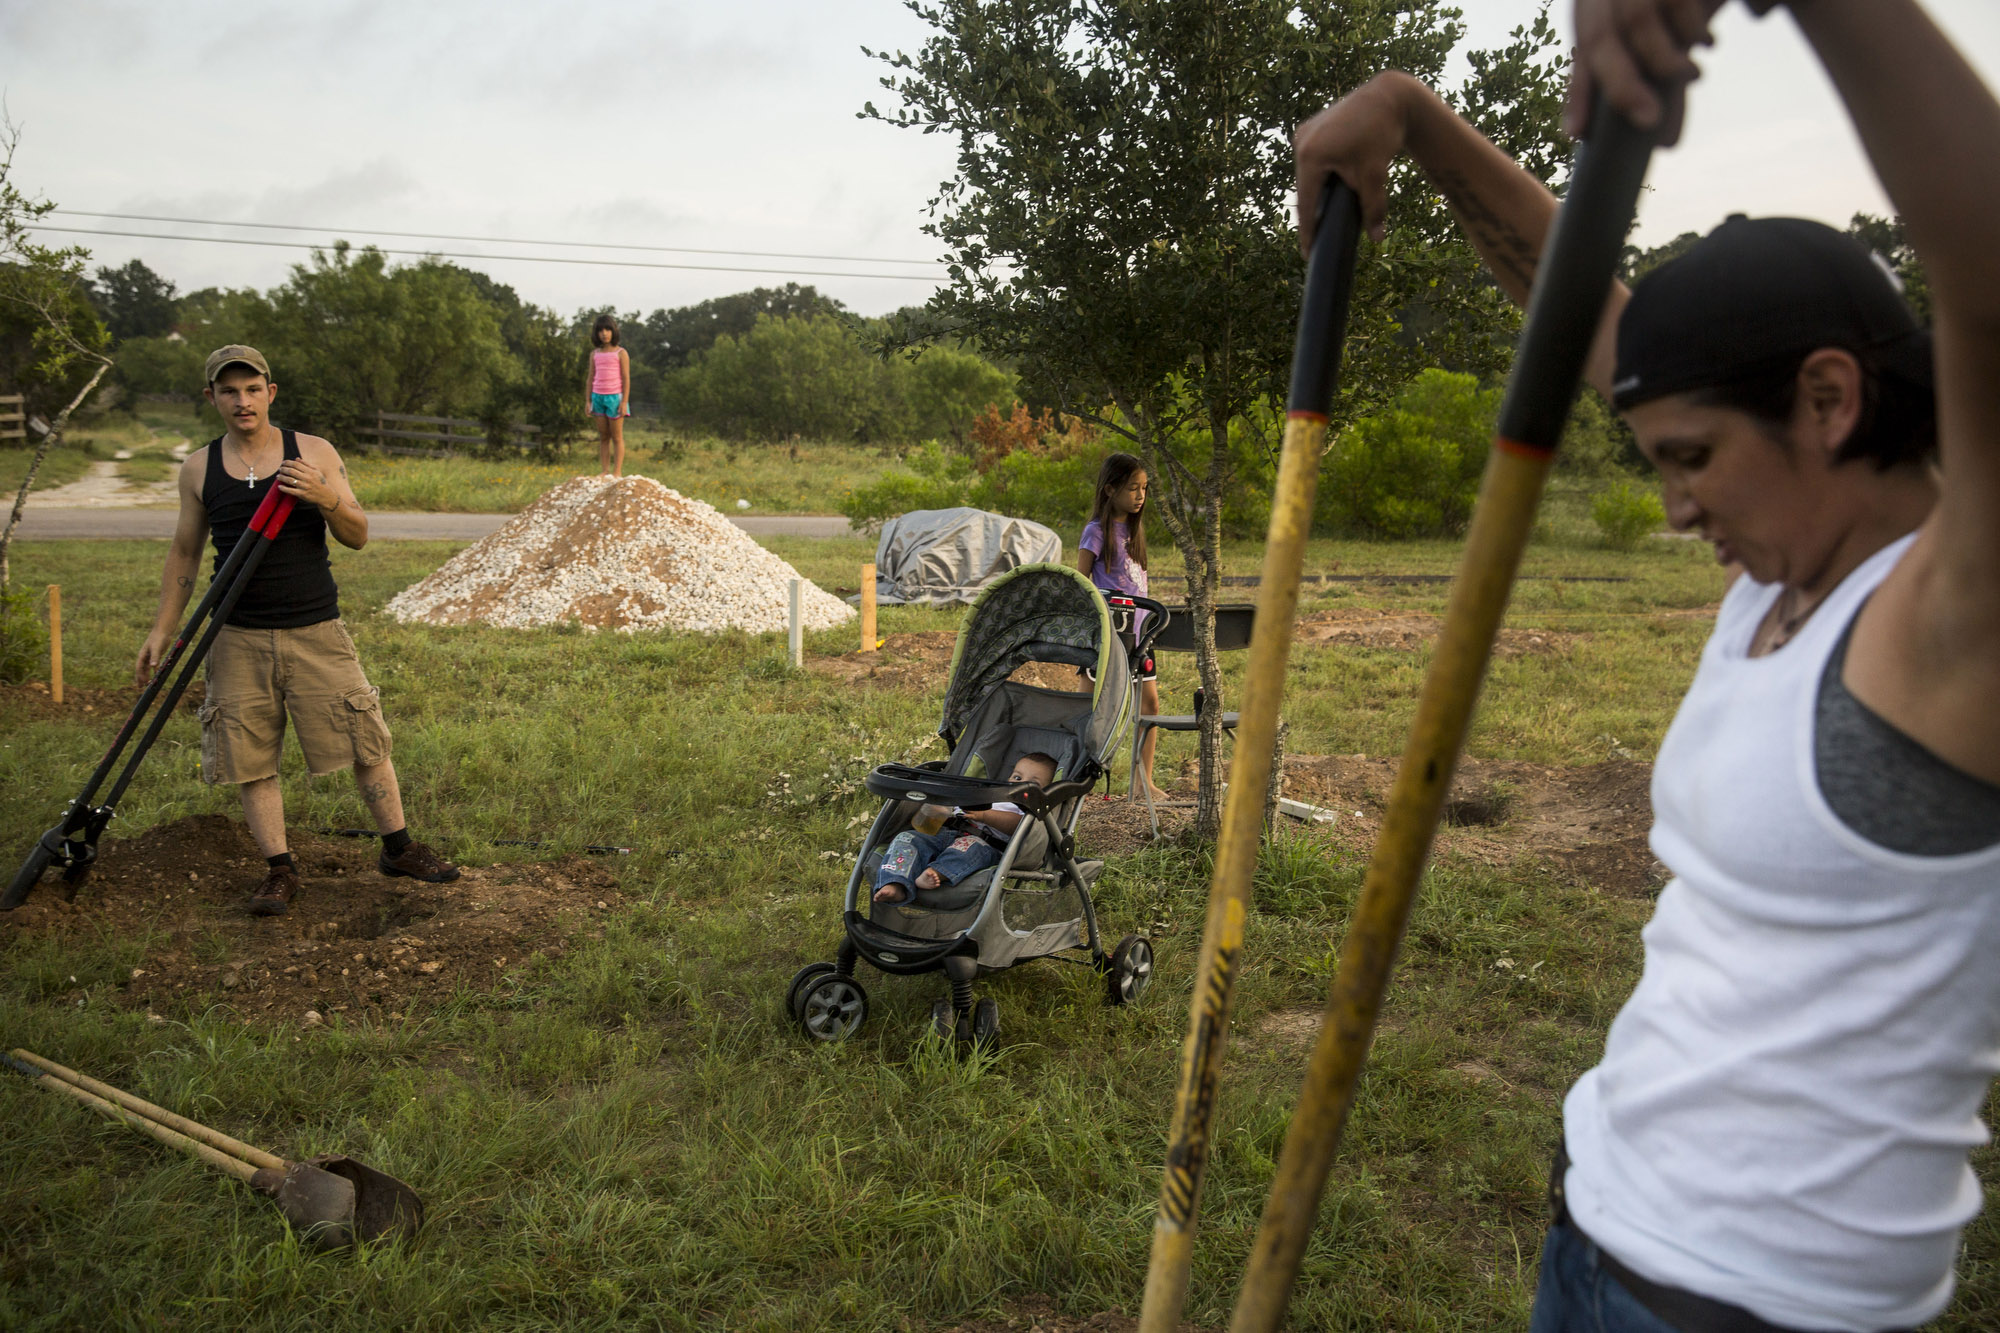 Glenda Bamberger, right, and her husband Jarrell Bamberger, left, widen holes dug in their yard in Blanco, Texas on July 11, 2015.  Their home was destroyed in the floods that occurred in May along the Blanco River in Central Texas.  They poured a concrete pillar in each of the twelve holes for the house they are building to replace the one that flooded.  The house will be eight feet off the ground in the hope that it will not be affected by future floods on their property.